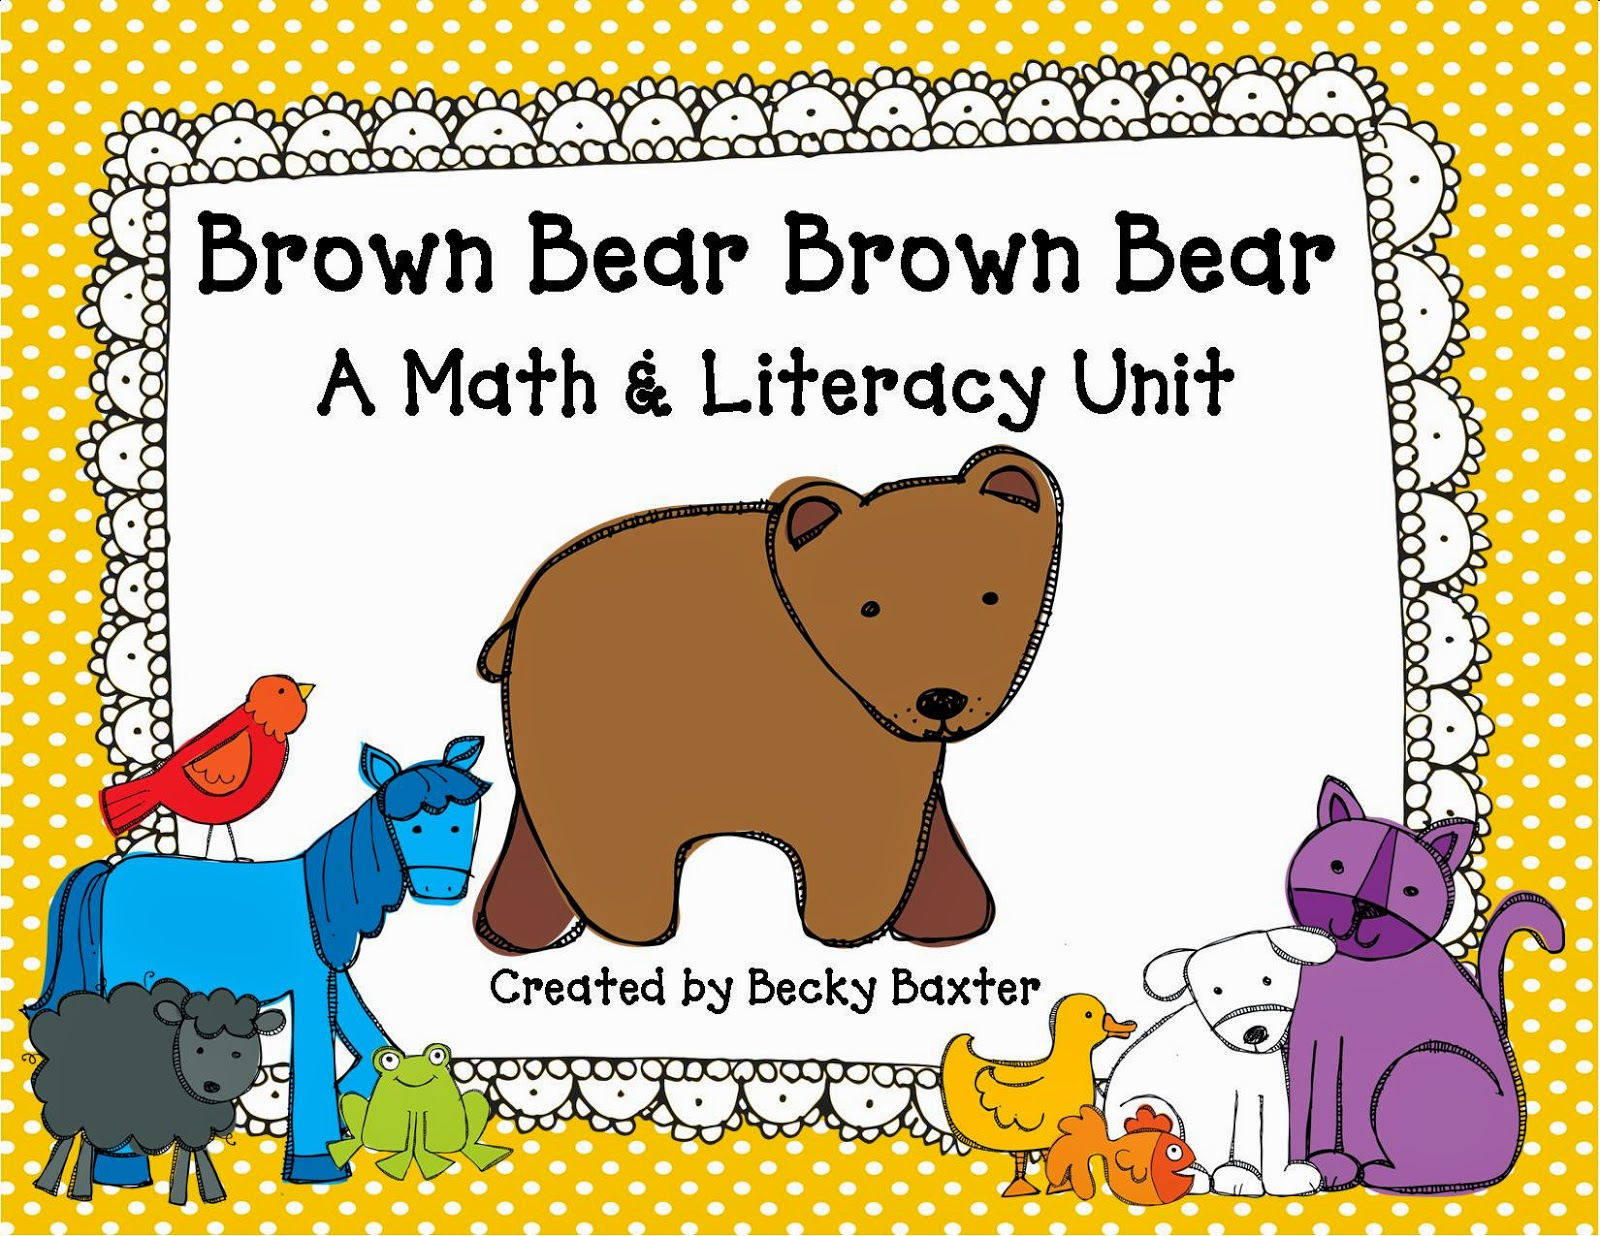 http://www.teacherspayteachers.com/Product/Brown-Bear-Brown-Bear-A-Math-Literacy-Unit-for-Kinder-Kids-1250501